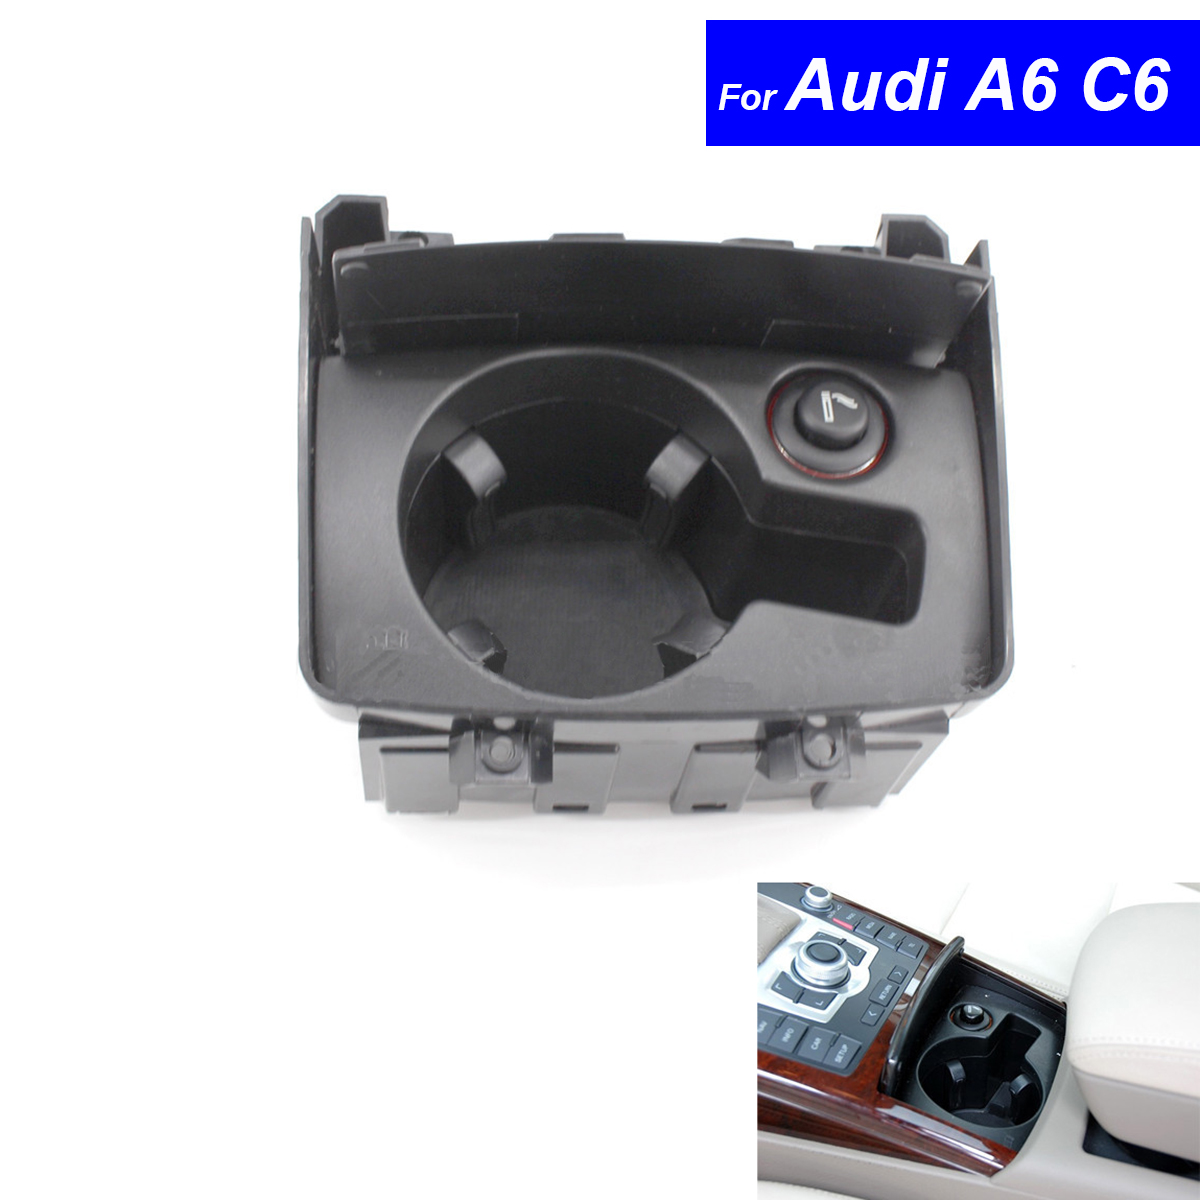 Car Styling Dash Cup Holder For Audi A6 C6 2006 2007 2008 2009 2010 2011 Car Drinks Holders Free Shipping 4F1 862 533C aftermarket free shipping motorcycle parts eliminator tidy tail for 2006 2007 2008 fz6 fazer 2007 2008b lack